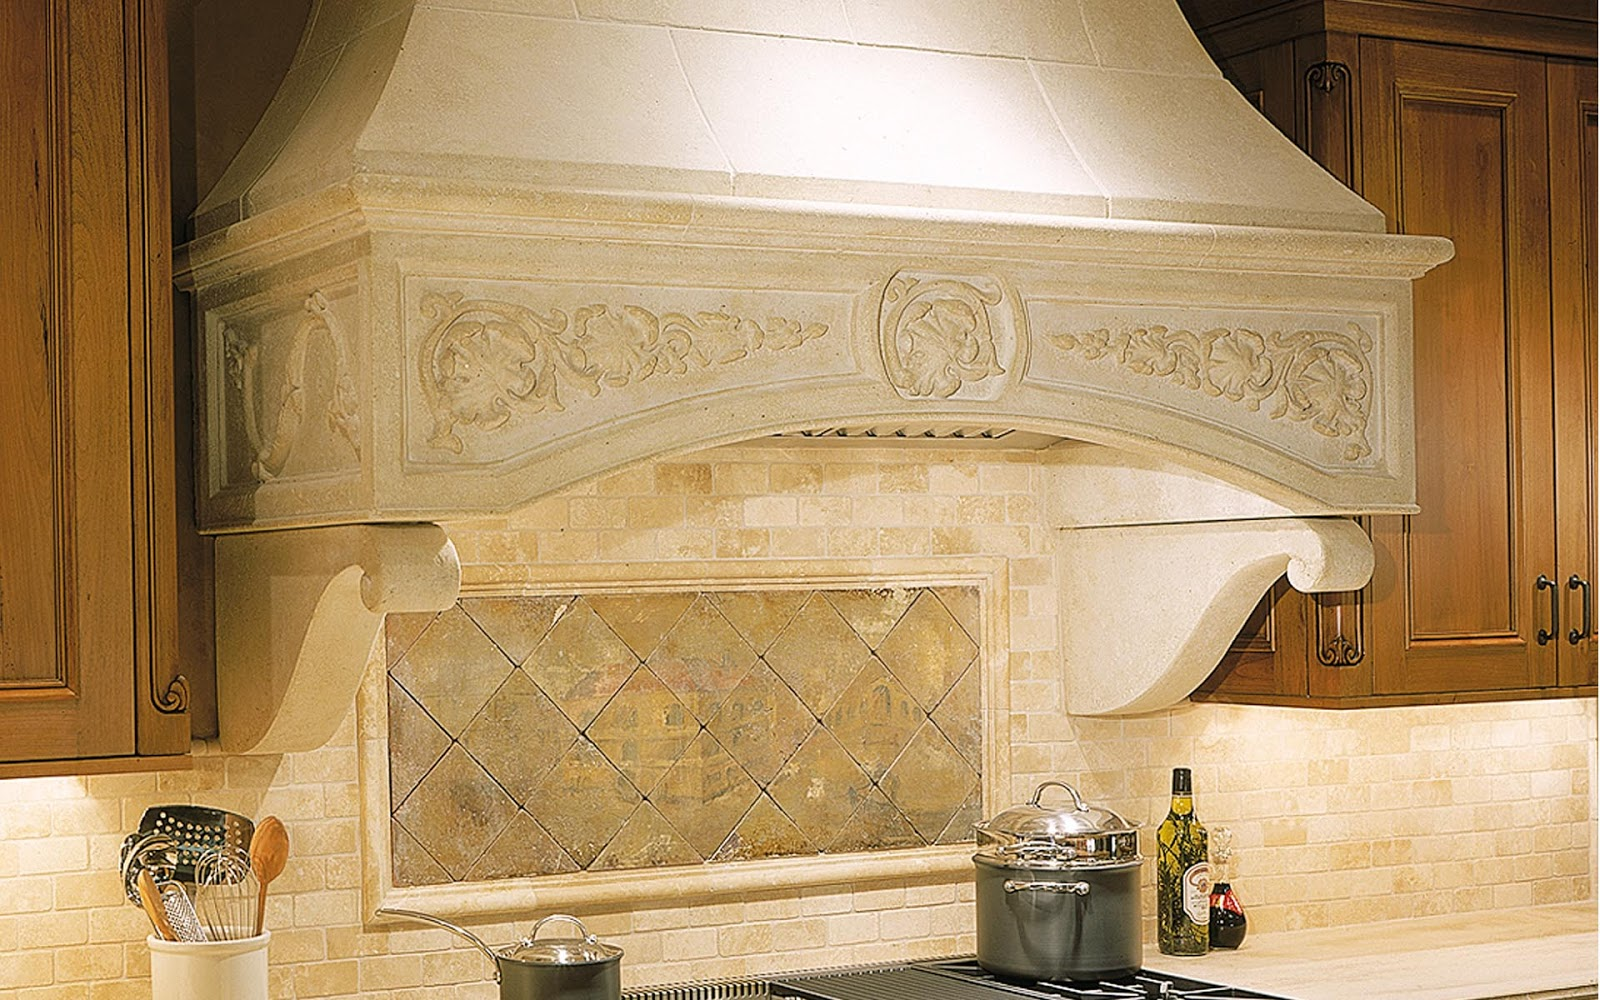 kcfauxdesign.com: DIY Decorative Hood Fixing Stove Hoods To Keep Pollution Out Of The Kitchen : The Salt Vent - Kitchen Stove Vents